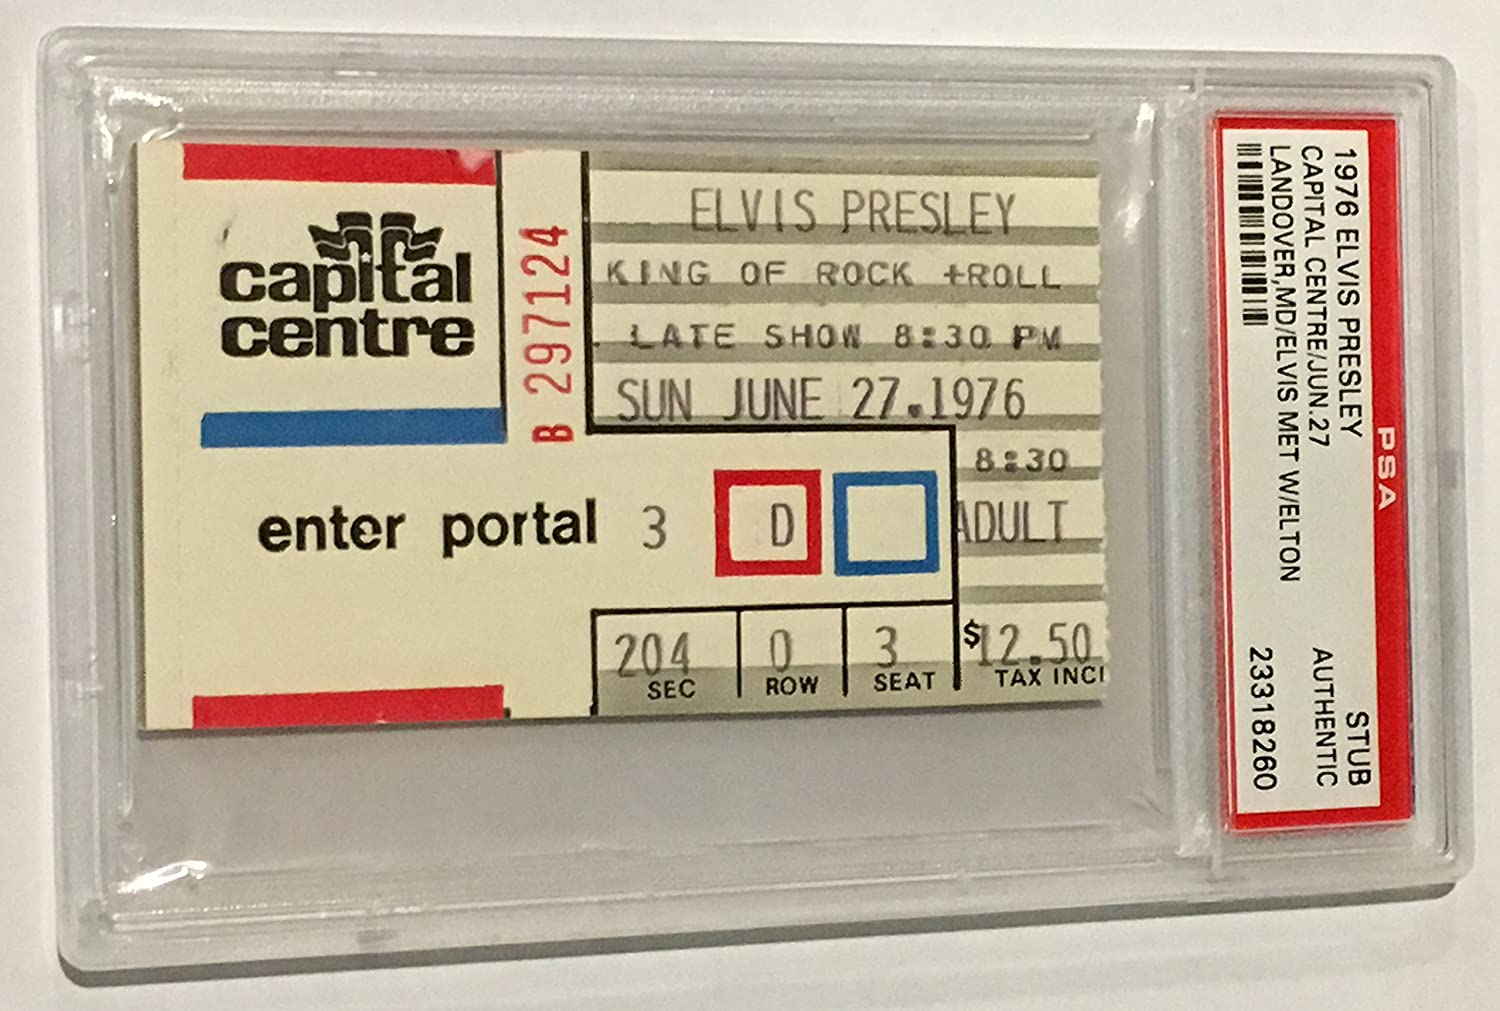 Elvis Presley Landover, MD 6/27/76 PSA Authentic Ticket Stub